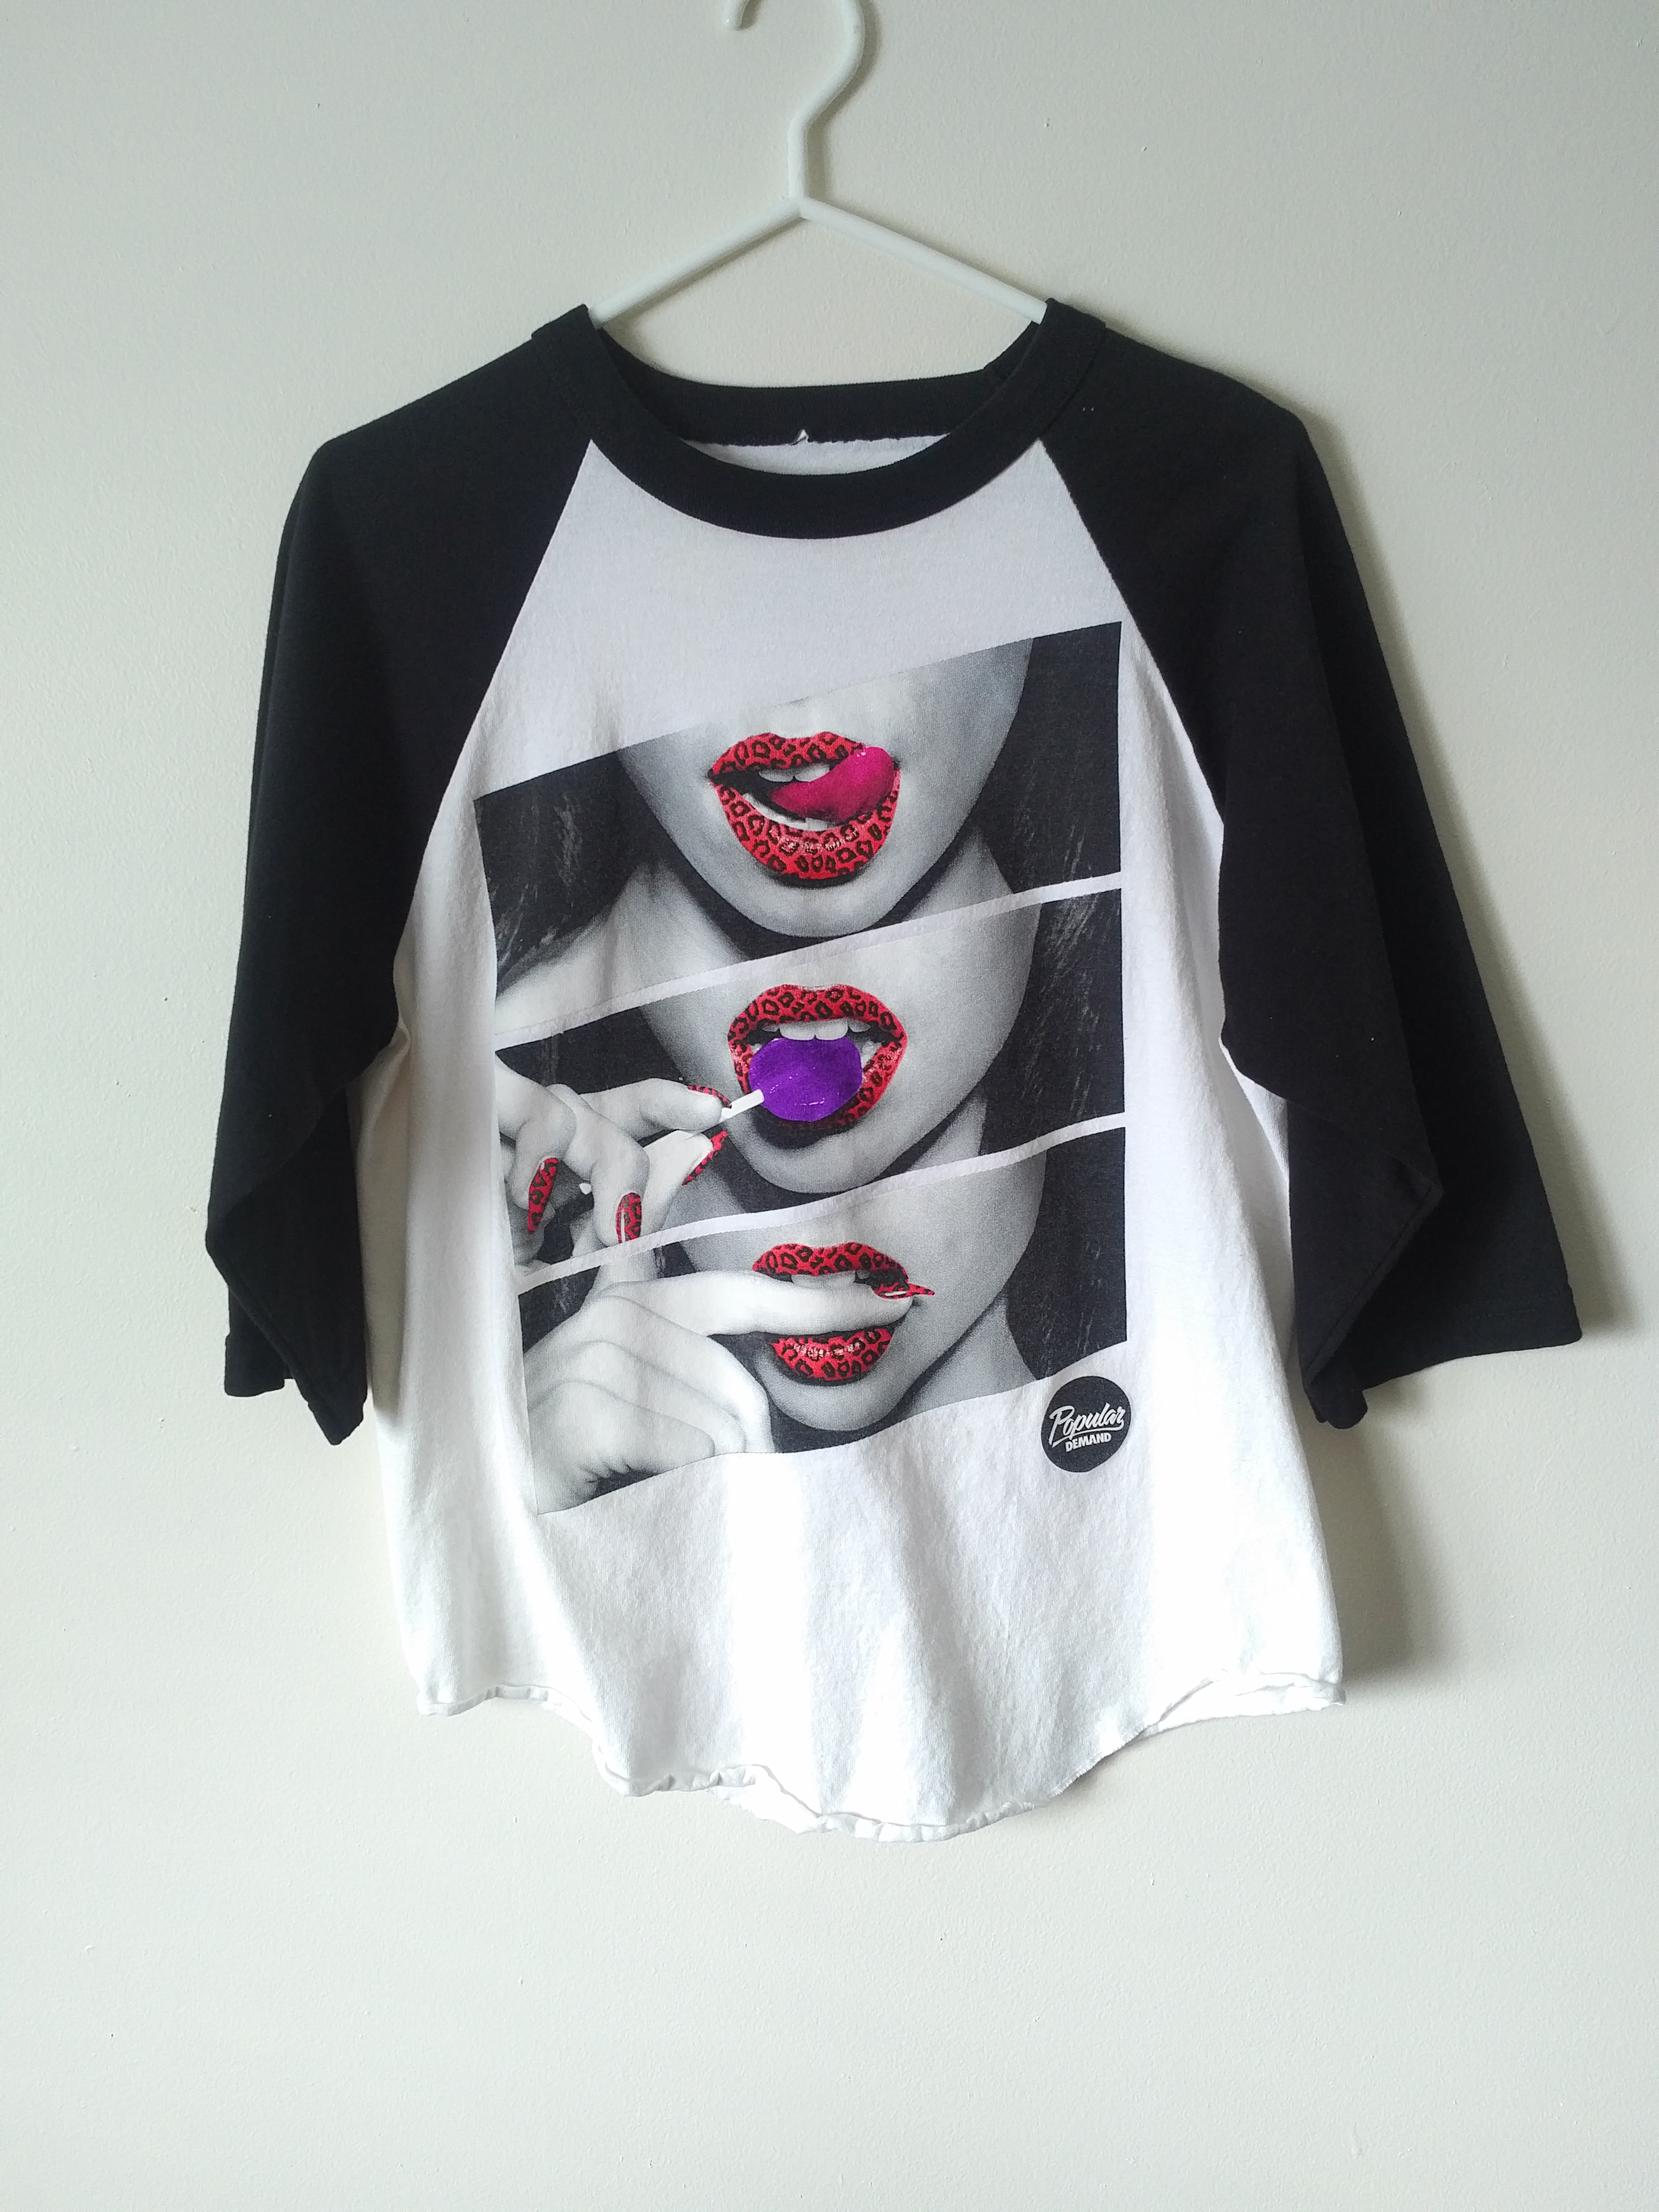 26122886 Popular Demand Popular Demand T-shirt With Lips On It | Grailed